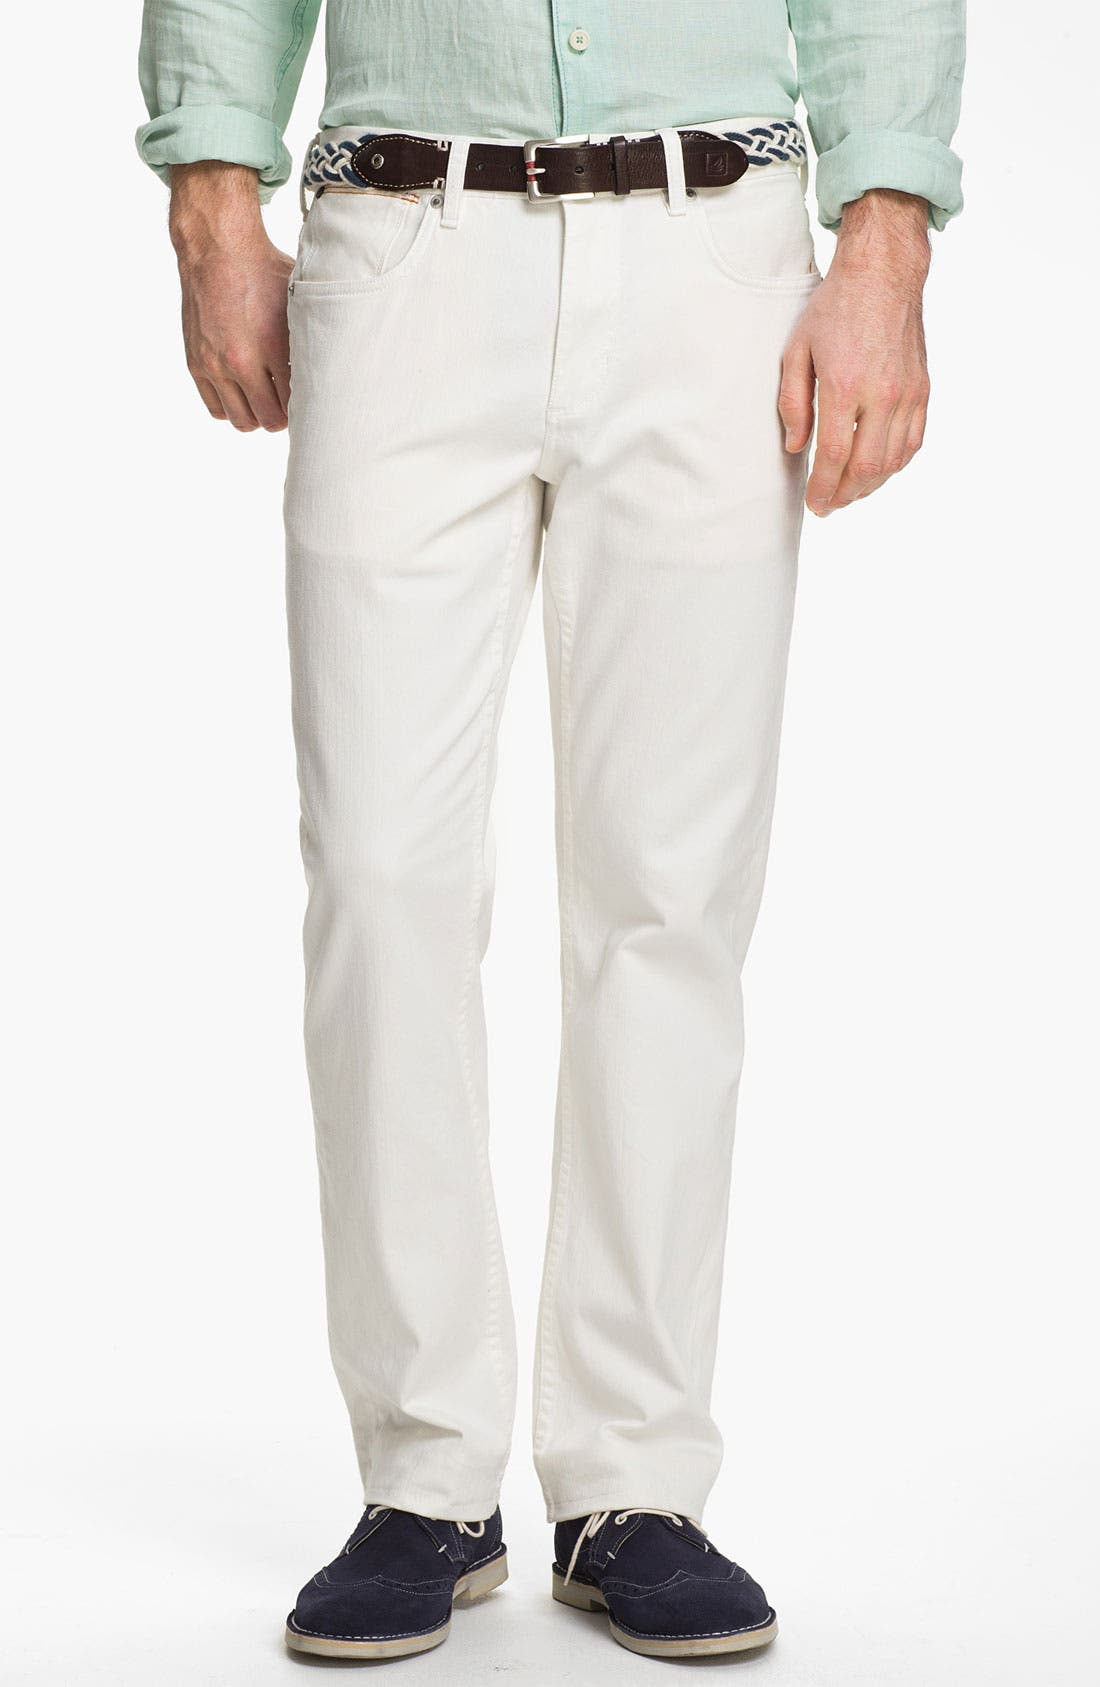 Alternate Image 1 Selected - Tommy Bahama Denim Authentic Fit Jeans (White)